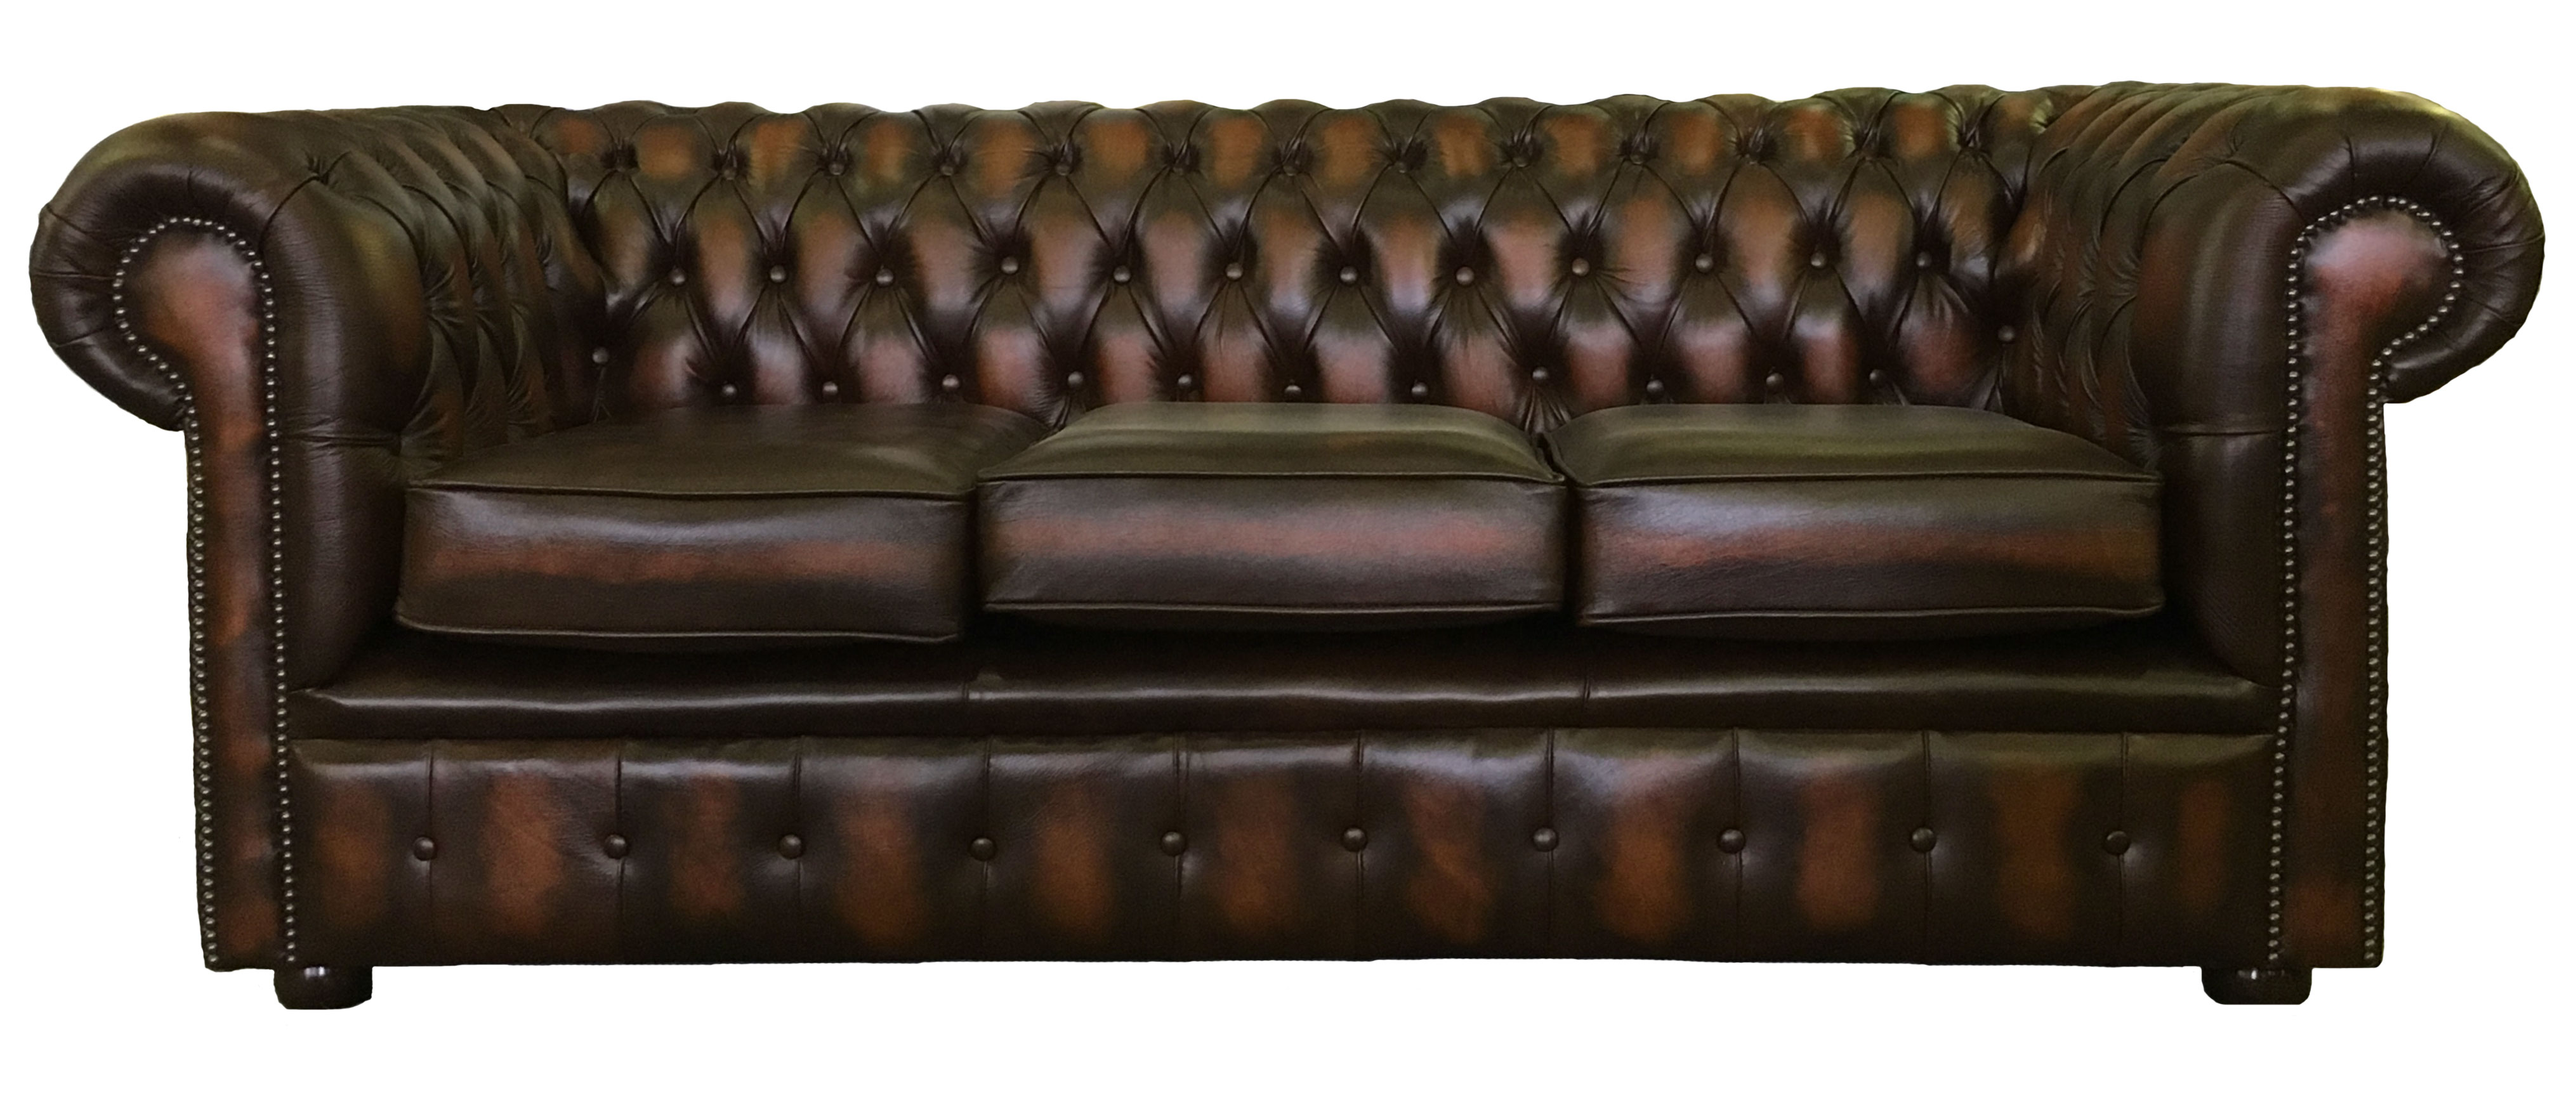 genuine leather chesterfield three seater two club armchair antique brown ebay. Black Bedroom Furniture Sets. Home Design Ideas